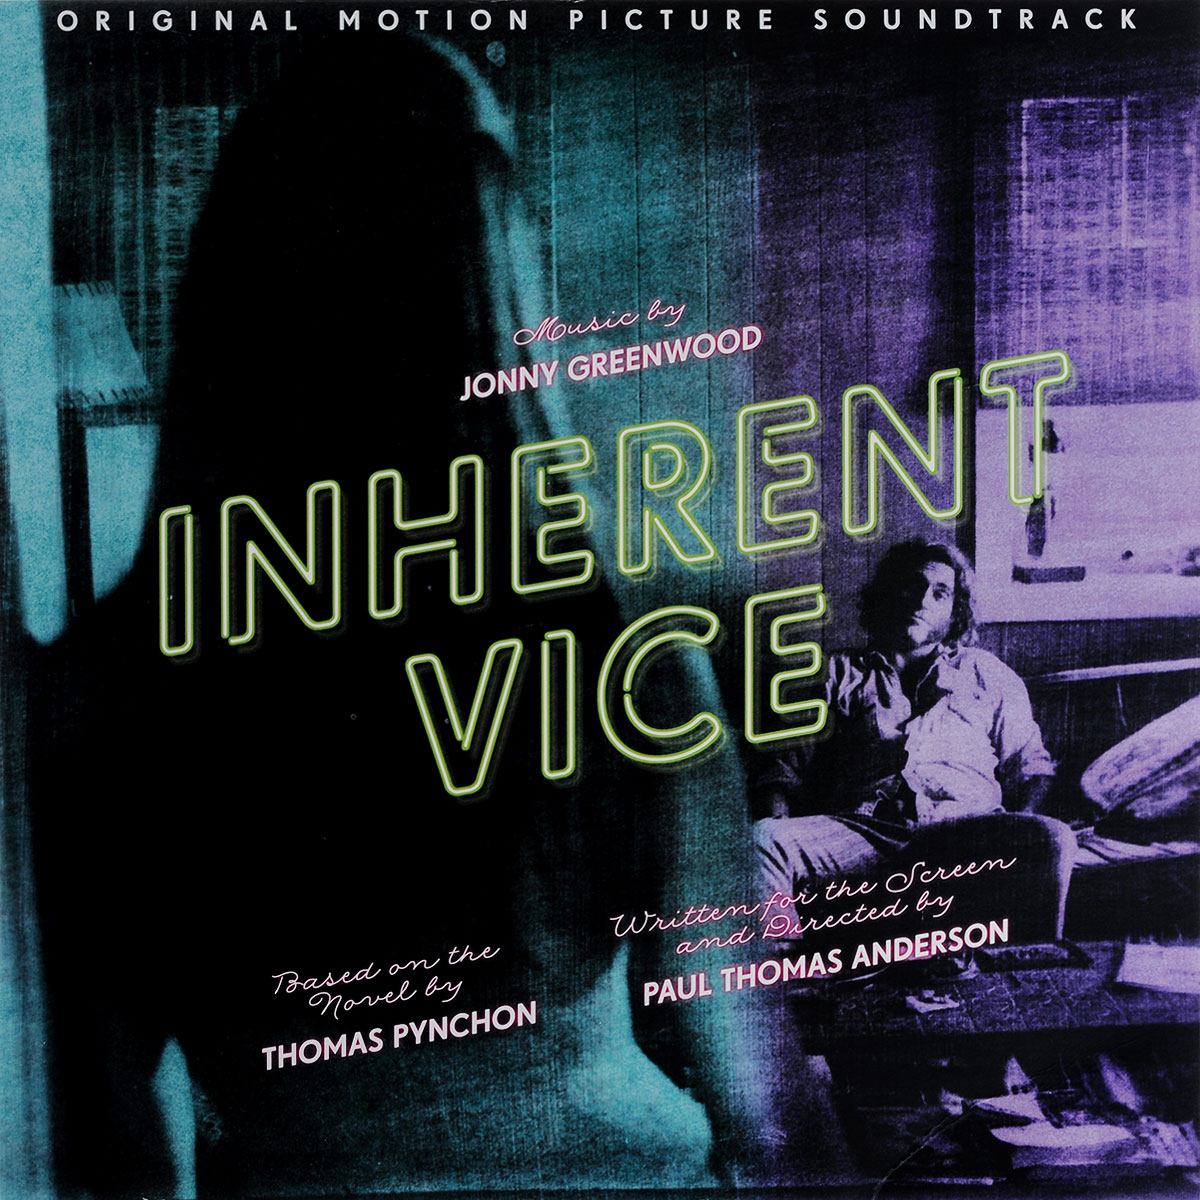 Jonny Greenwood. Inherent Vice. Original Motion Picture Soundtrack (2 LP) love story music from the original motion picture soundtrack